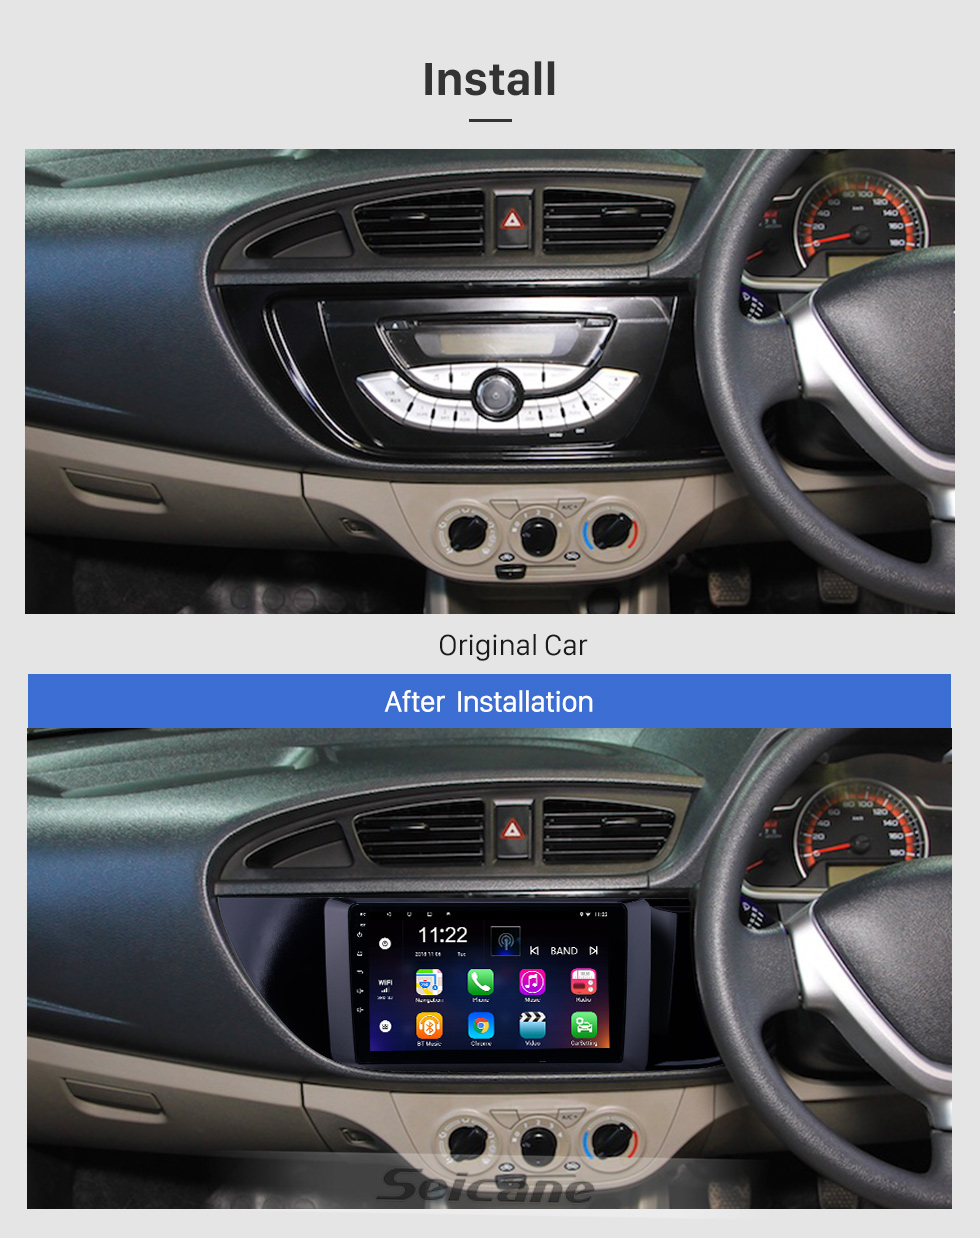 Seicane Android 8.1 9 inch HD Touchscreen GPS Navigation Radio for 2015-2018 Suzuki Alto K10 with Bluetooth WIFI support Carplay SWC